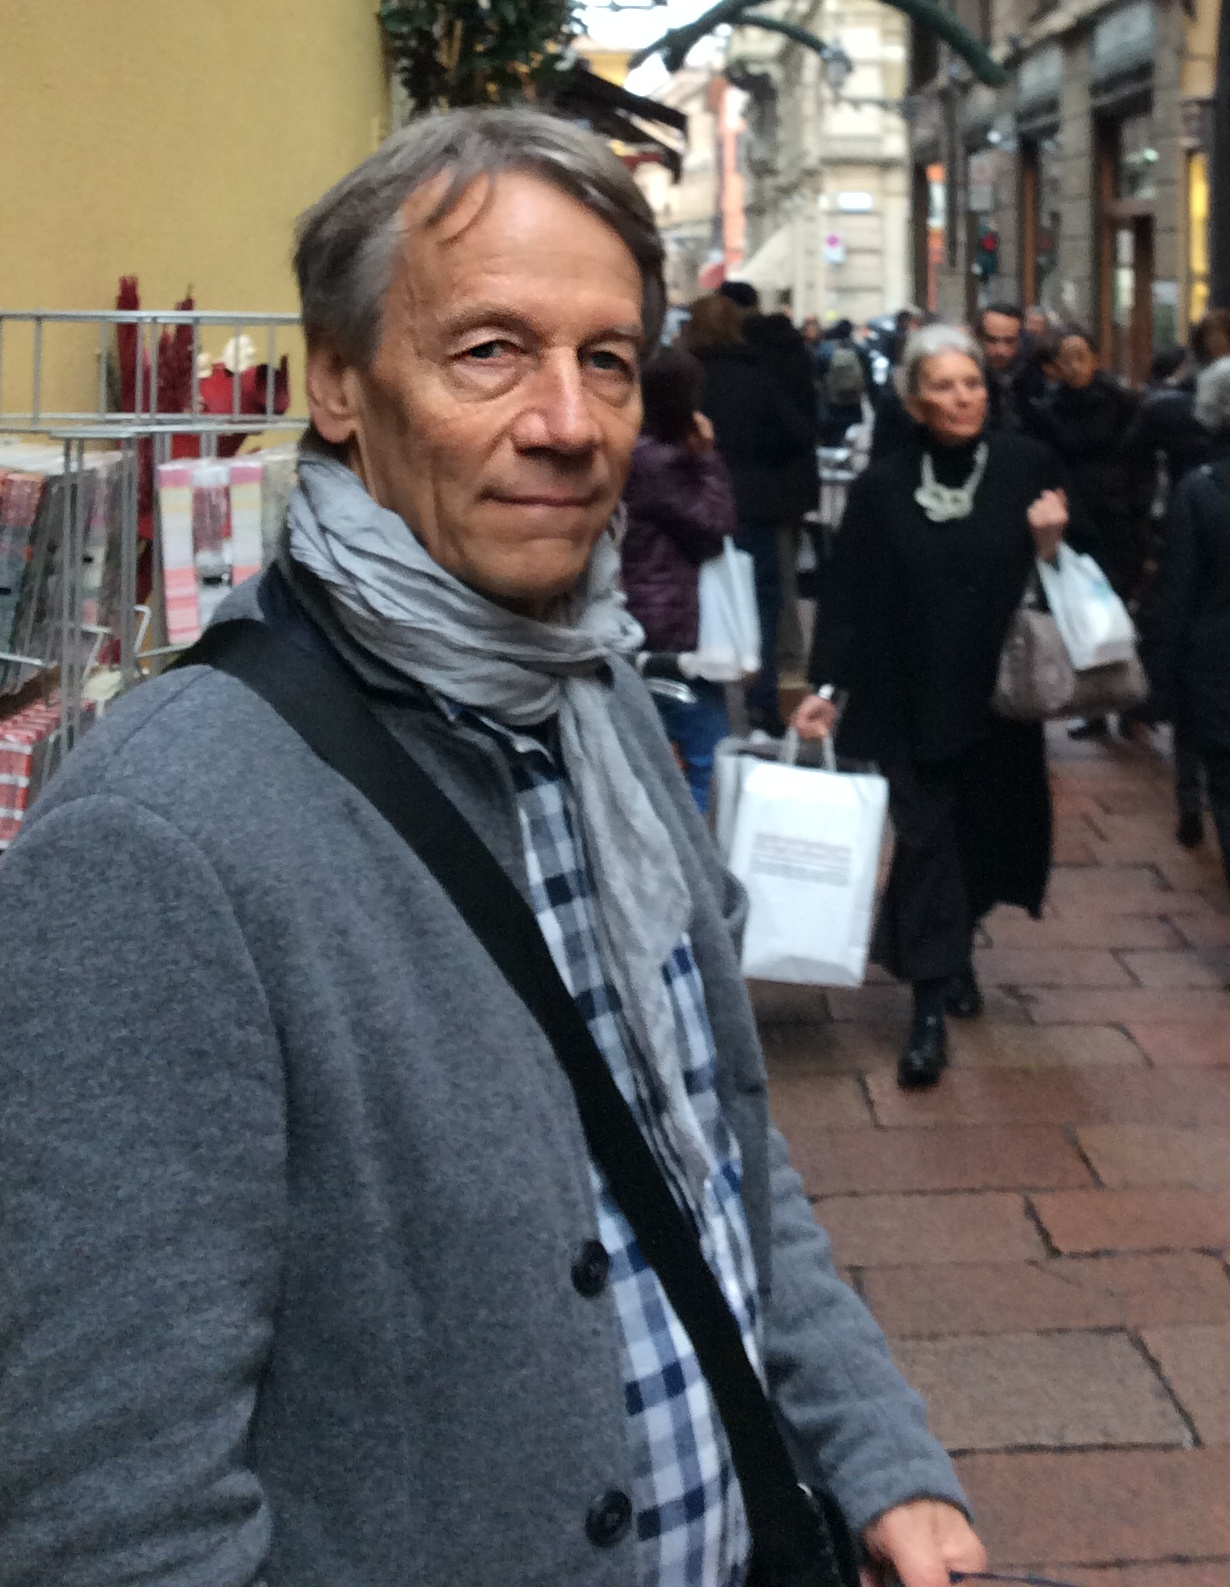 rick-bailey-in-bologna-cropped